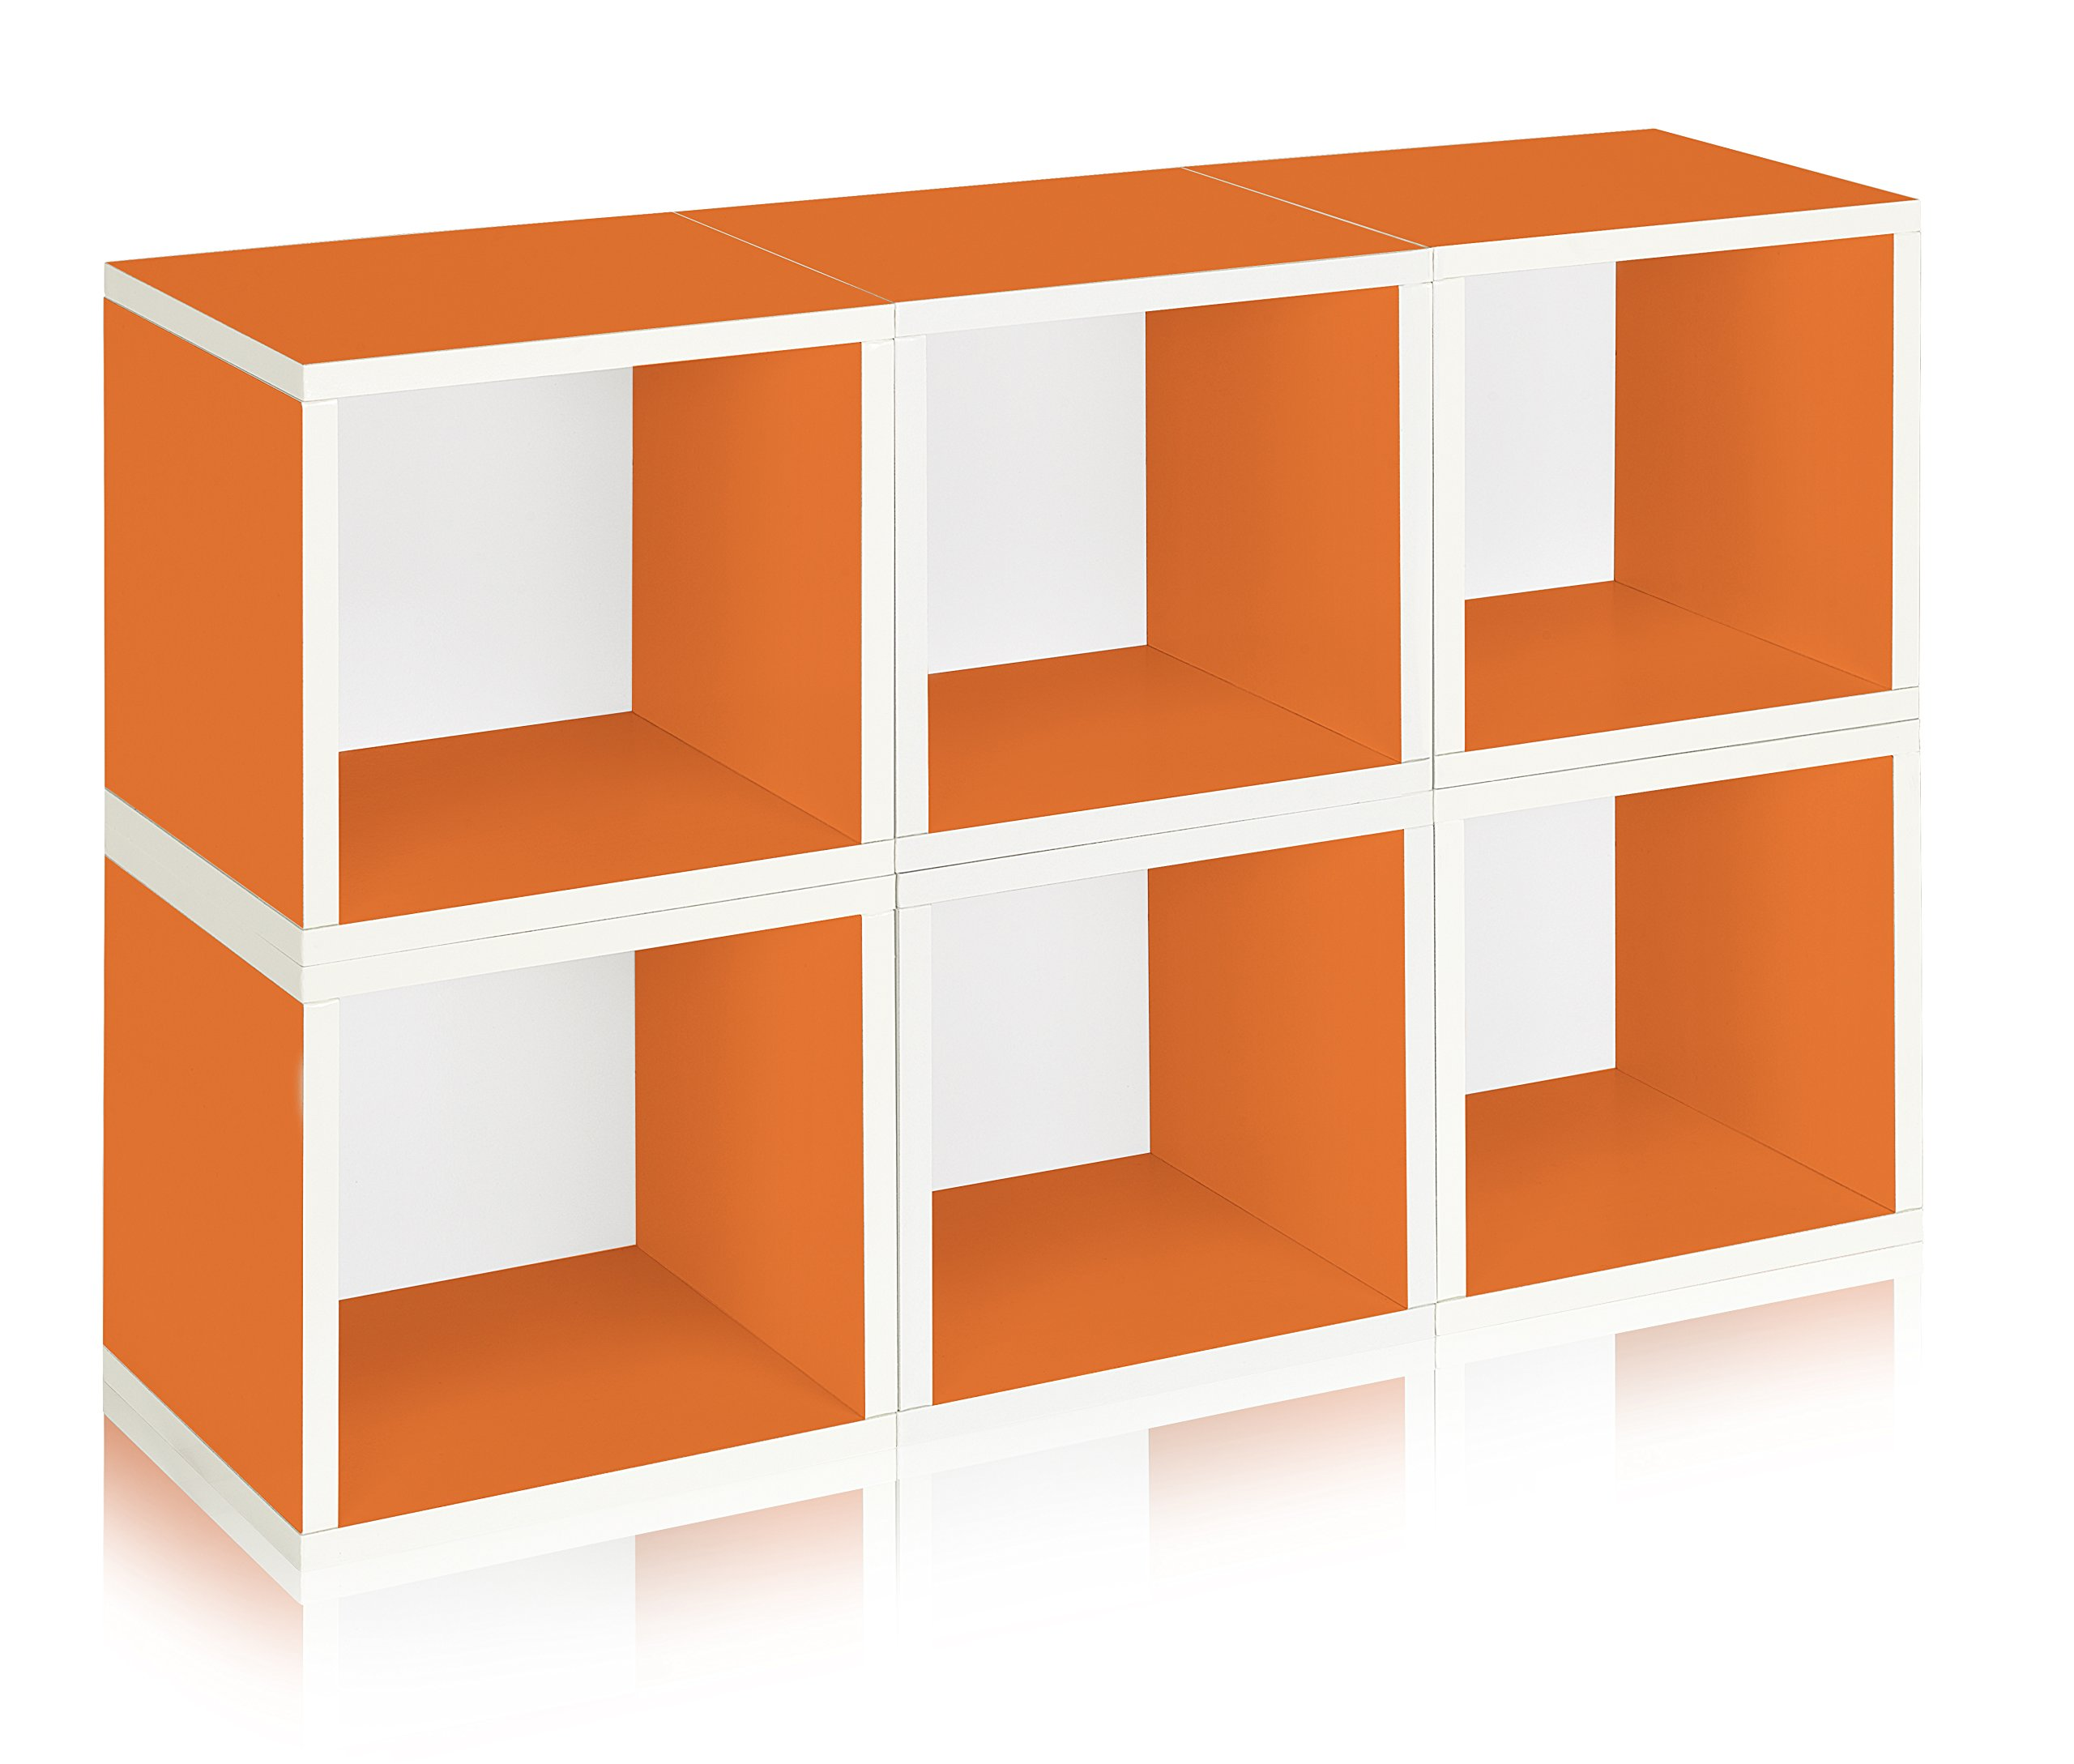 Way Basics Eco Stackable Modular Storage Cubes (Set of 6), Orange (made from sustainable non-toxic zBoard paperboard)